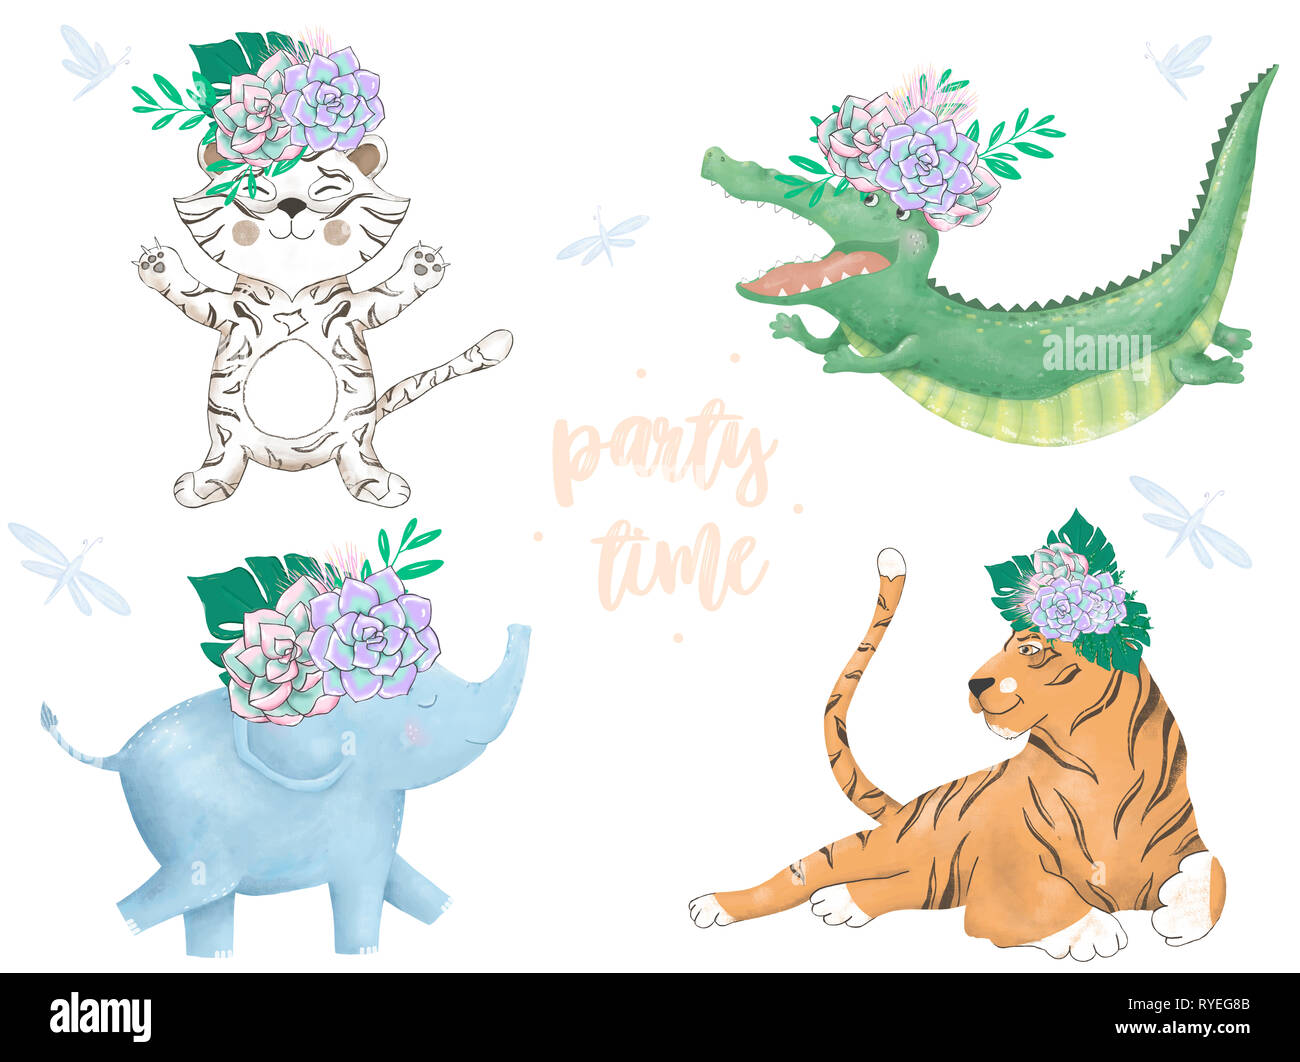 Watercolor Tiger Croc Elephant Lion Digital Zoo Clip Art Cute Animal And Flowers Party Time Text Greeting Celebration Birthday Card Funny African W